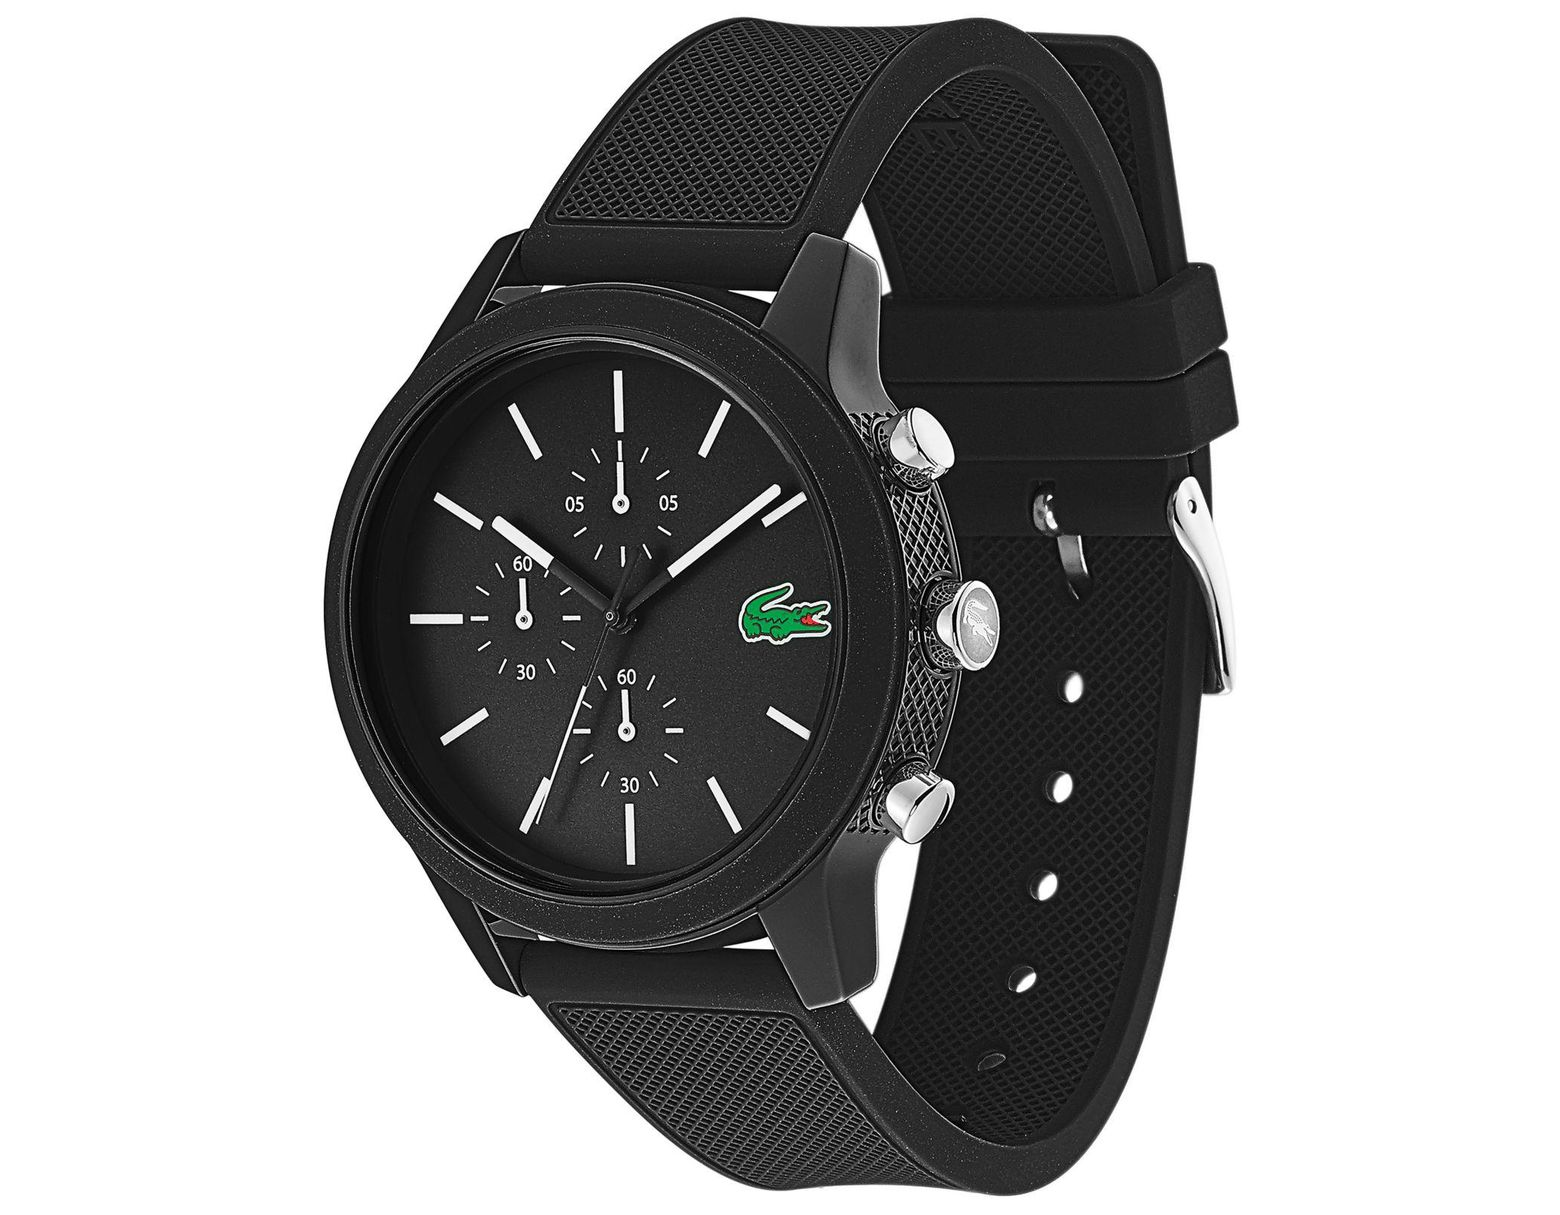 d3cf293a9 Lacoste Chronograph 12.12 Black Silicone Strap Watch 44mm in Black for Men  - Lyst